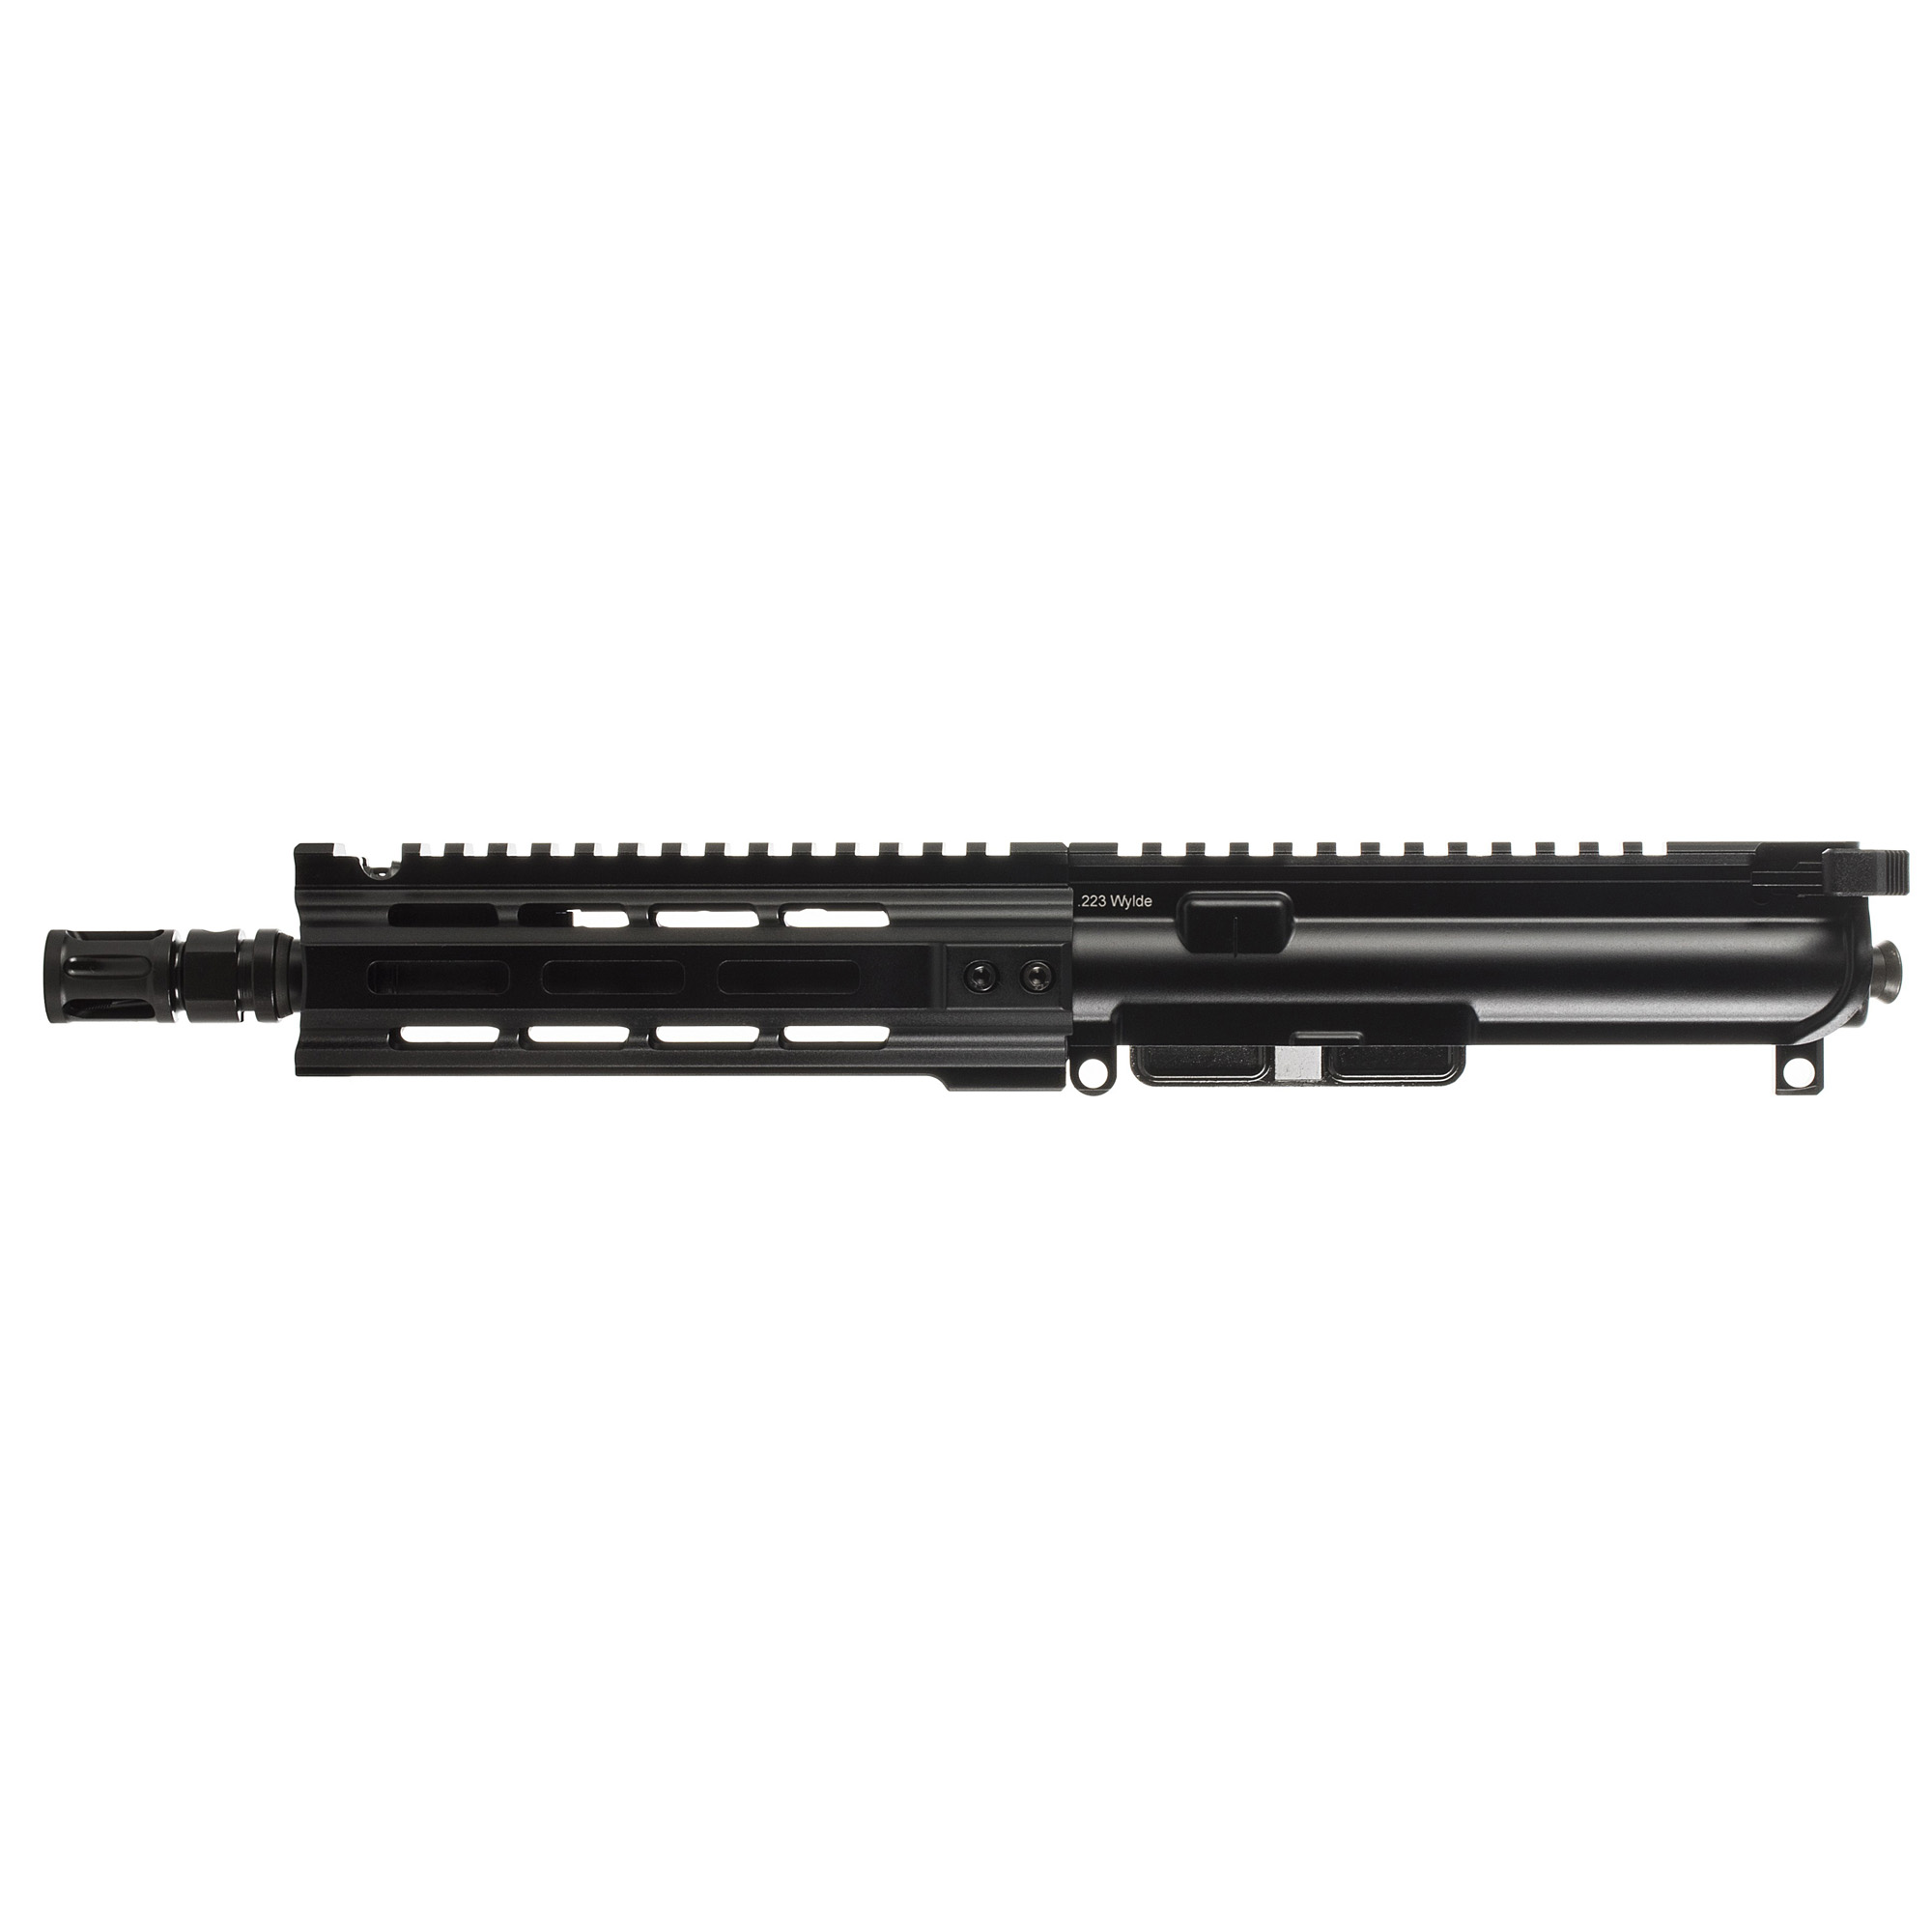 "The MK1 MOD 1-M line"" revamped for 2018"" features the PWS long stroke piston system. Internally"" this line offers the tried and true system that PWS owners have grown to know and love. Featuring a free-float MLOK handguard"" forward assist controls"" and a more true to mil-spec design"" the MK1 MOD 1-M line is a go-to for not only civilians"" but also Law Enforcement. With the fully forged upper and lower receivers"" the MK1 MOD 1-M is a no-nonsense tool for when you need a high value option that is relentless and unstoppable. The shortest available option in the MK1 MOD 1-M series"" the MK107 was the first firearm developed by PWS. Known as ""The Diablo"""" the MK107 was designed to replace MP5 style weapons. Used heavily in law enforcement and SWAT settings"" the MK107 has been a vital part in the growing use of SBRs as patrol rifles."